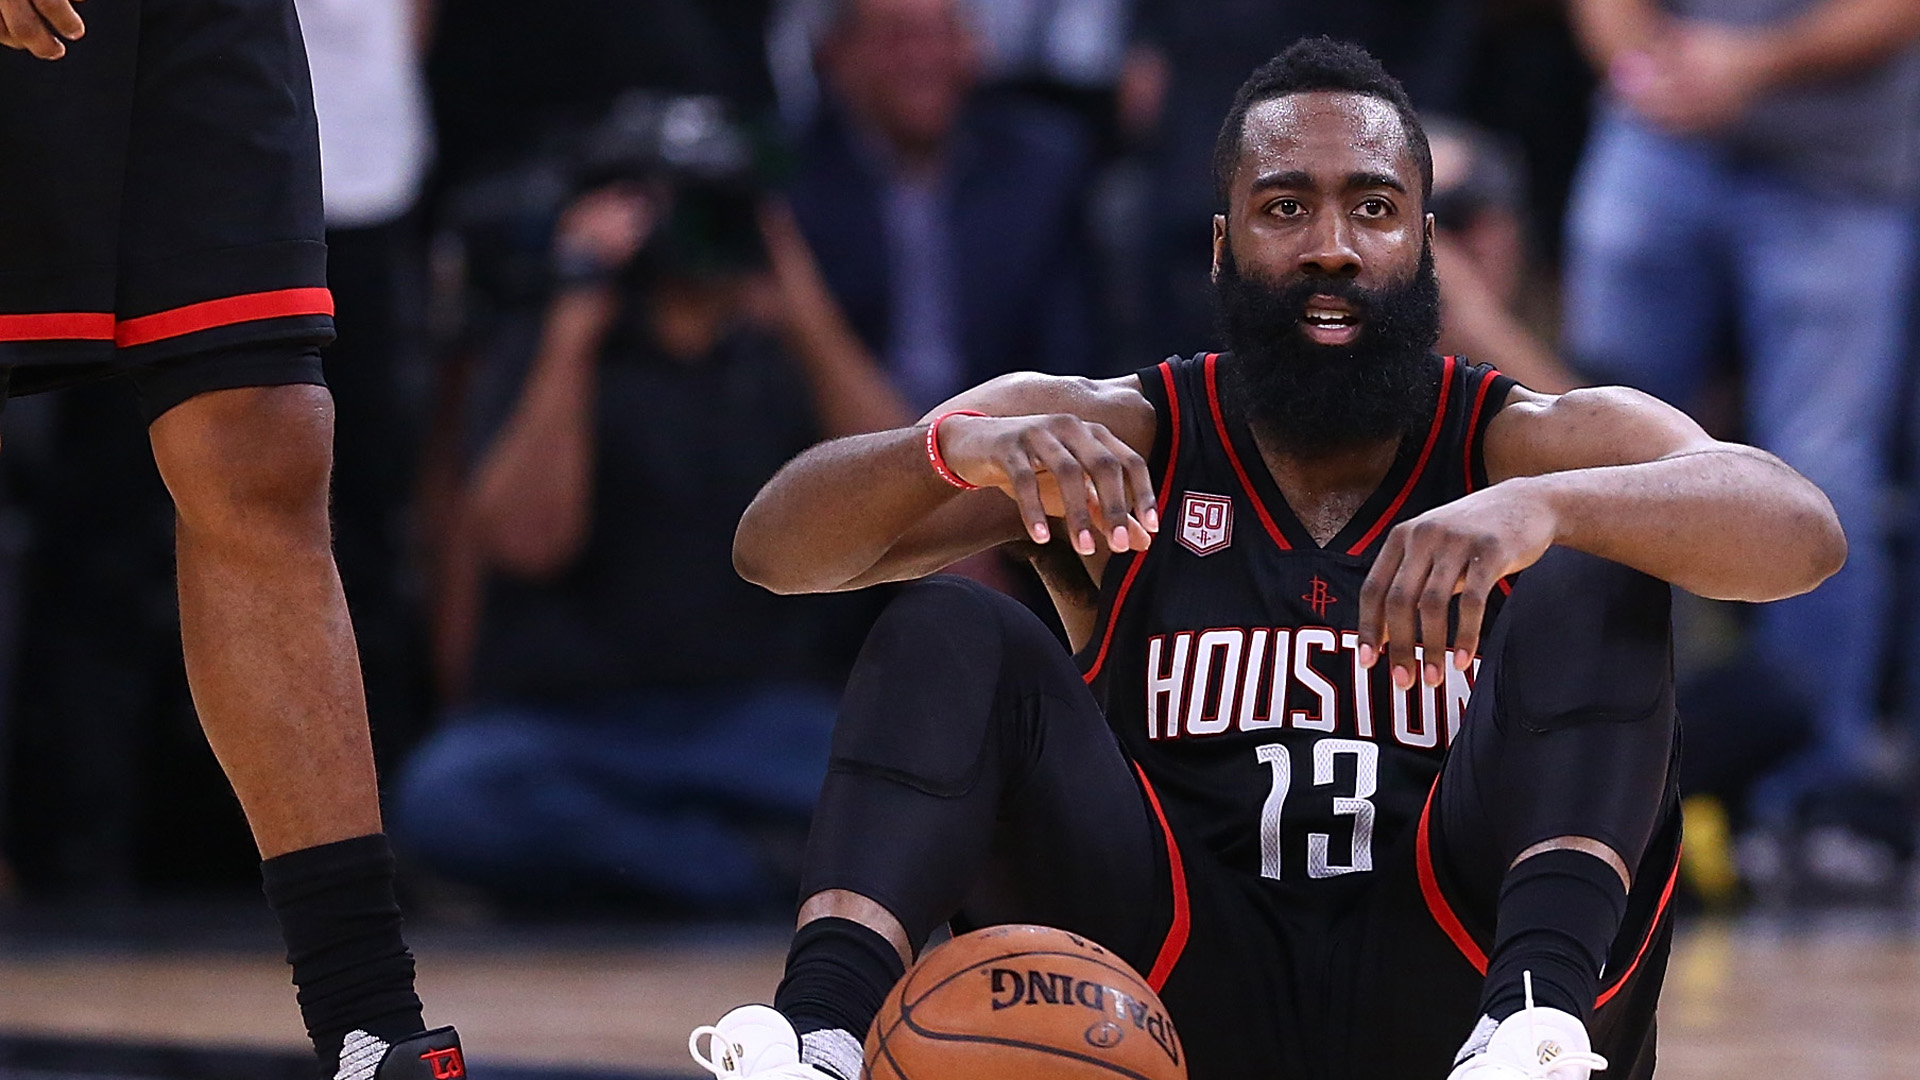 Misfiring Houston Rockets beat Detroit Pistons for 7th straight win